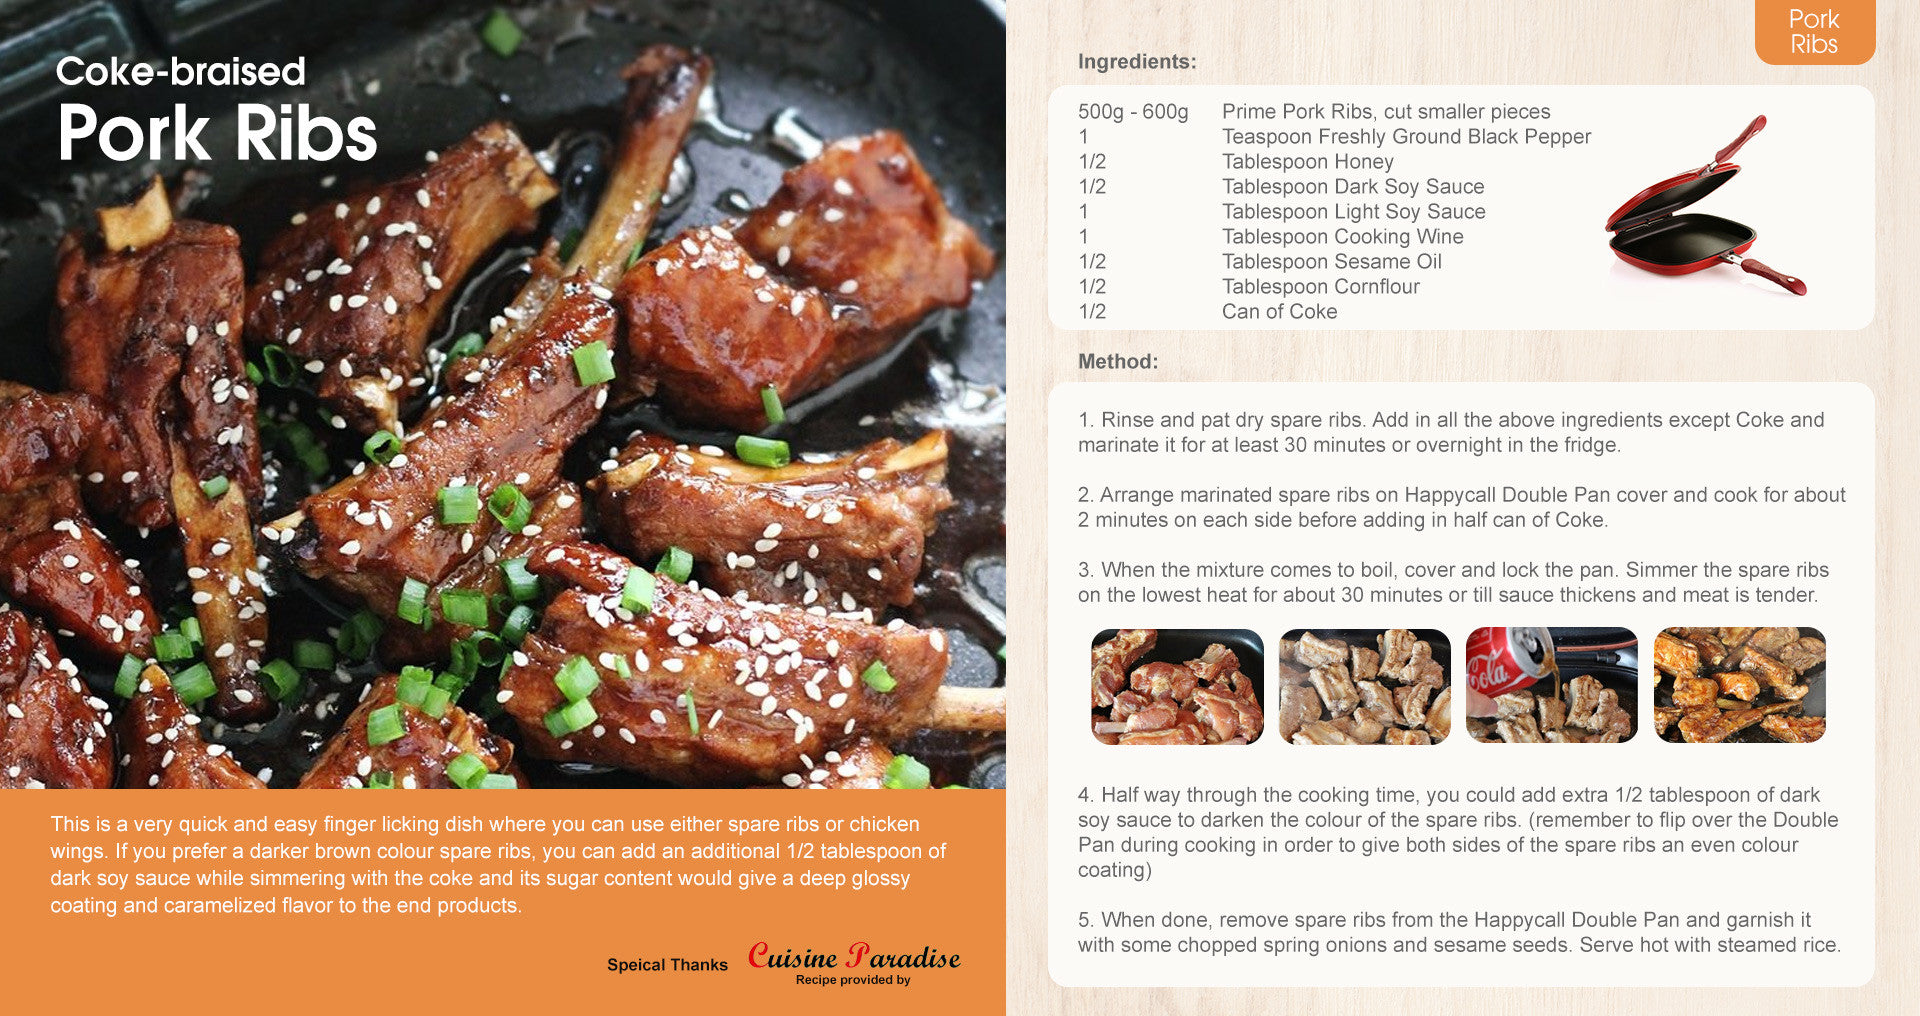 Happycall Double Pan Coke-braised  Pork Ribs